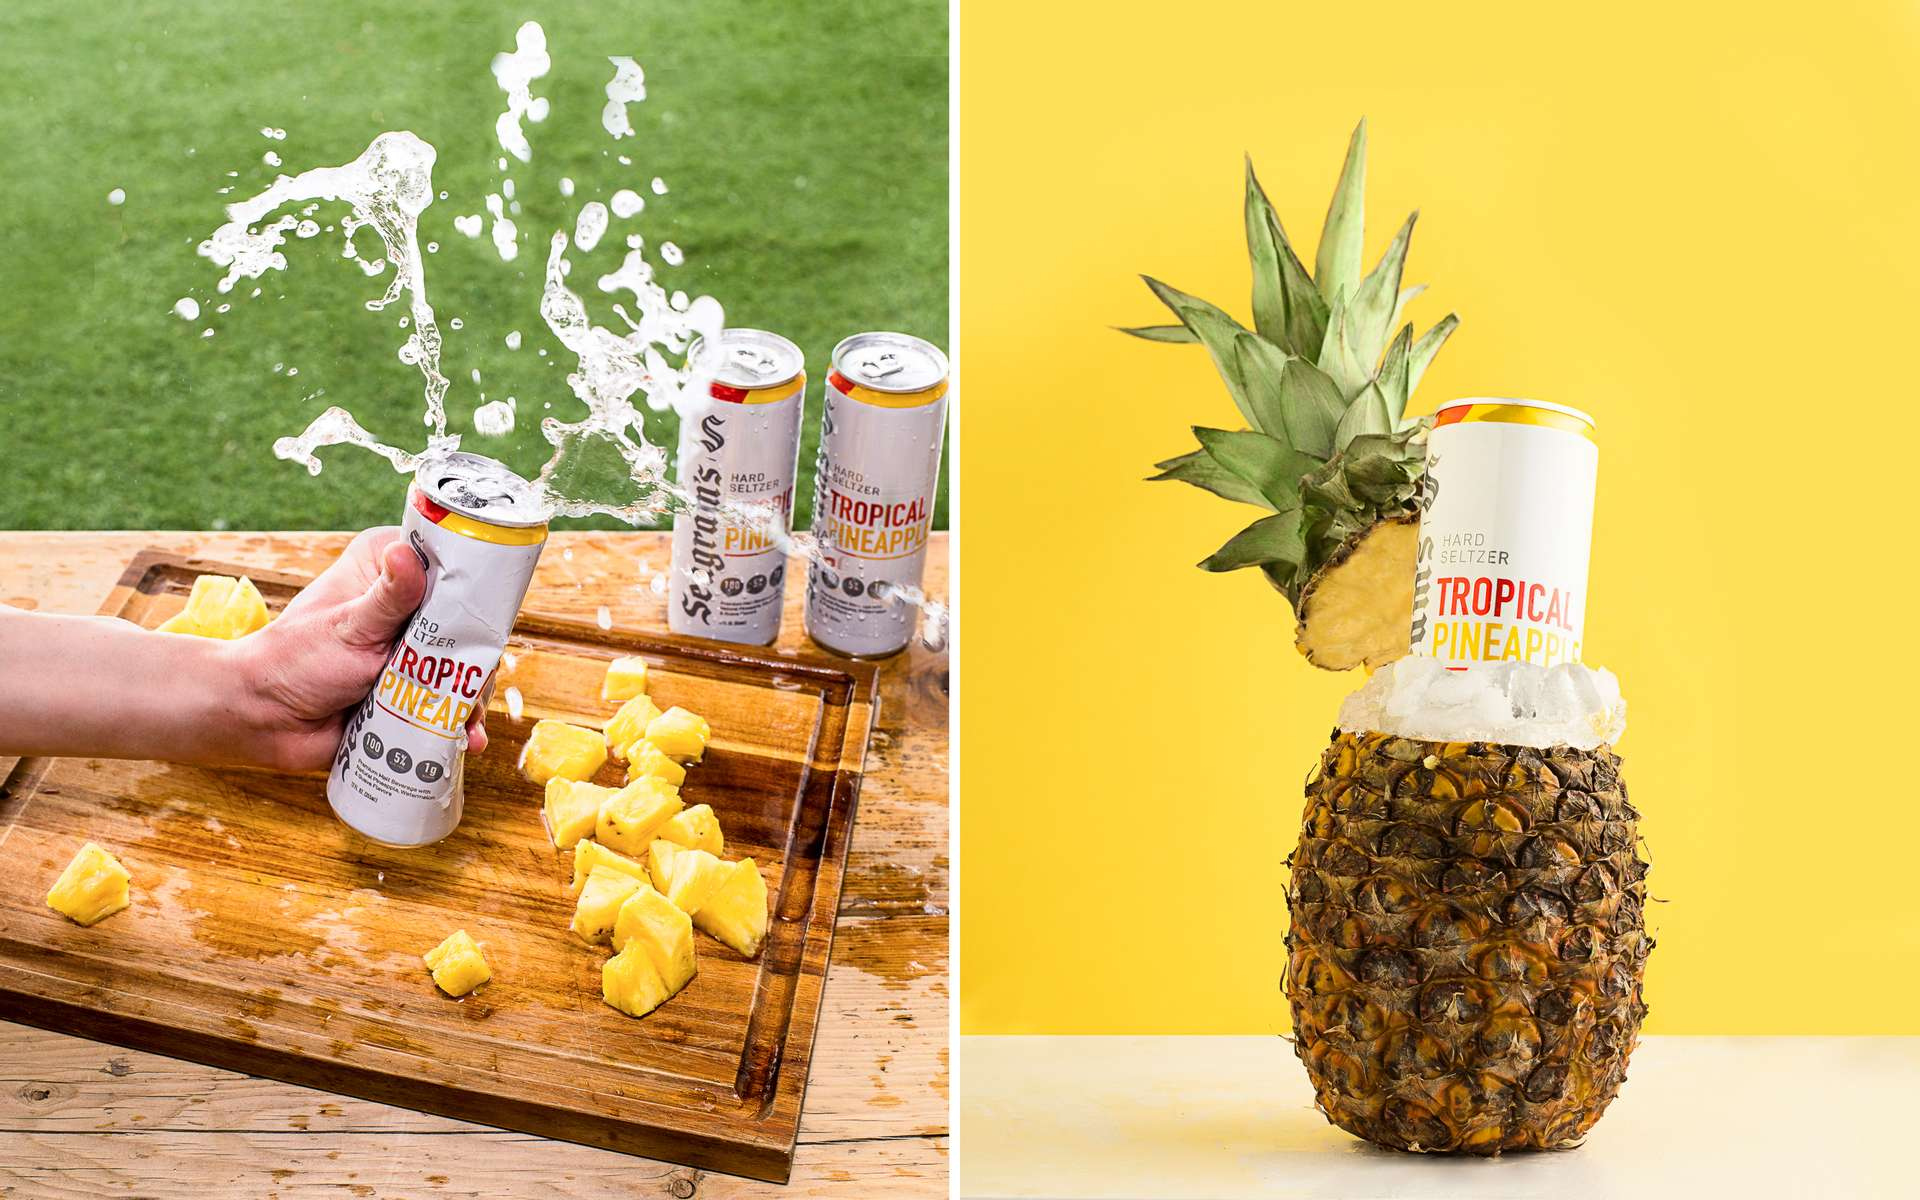 Beverage product photography with pineapples, fruit and splashes for Seagram's Hard Seltzer line.